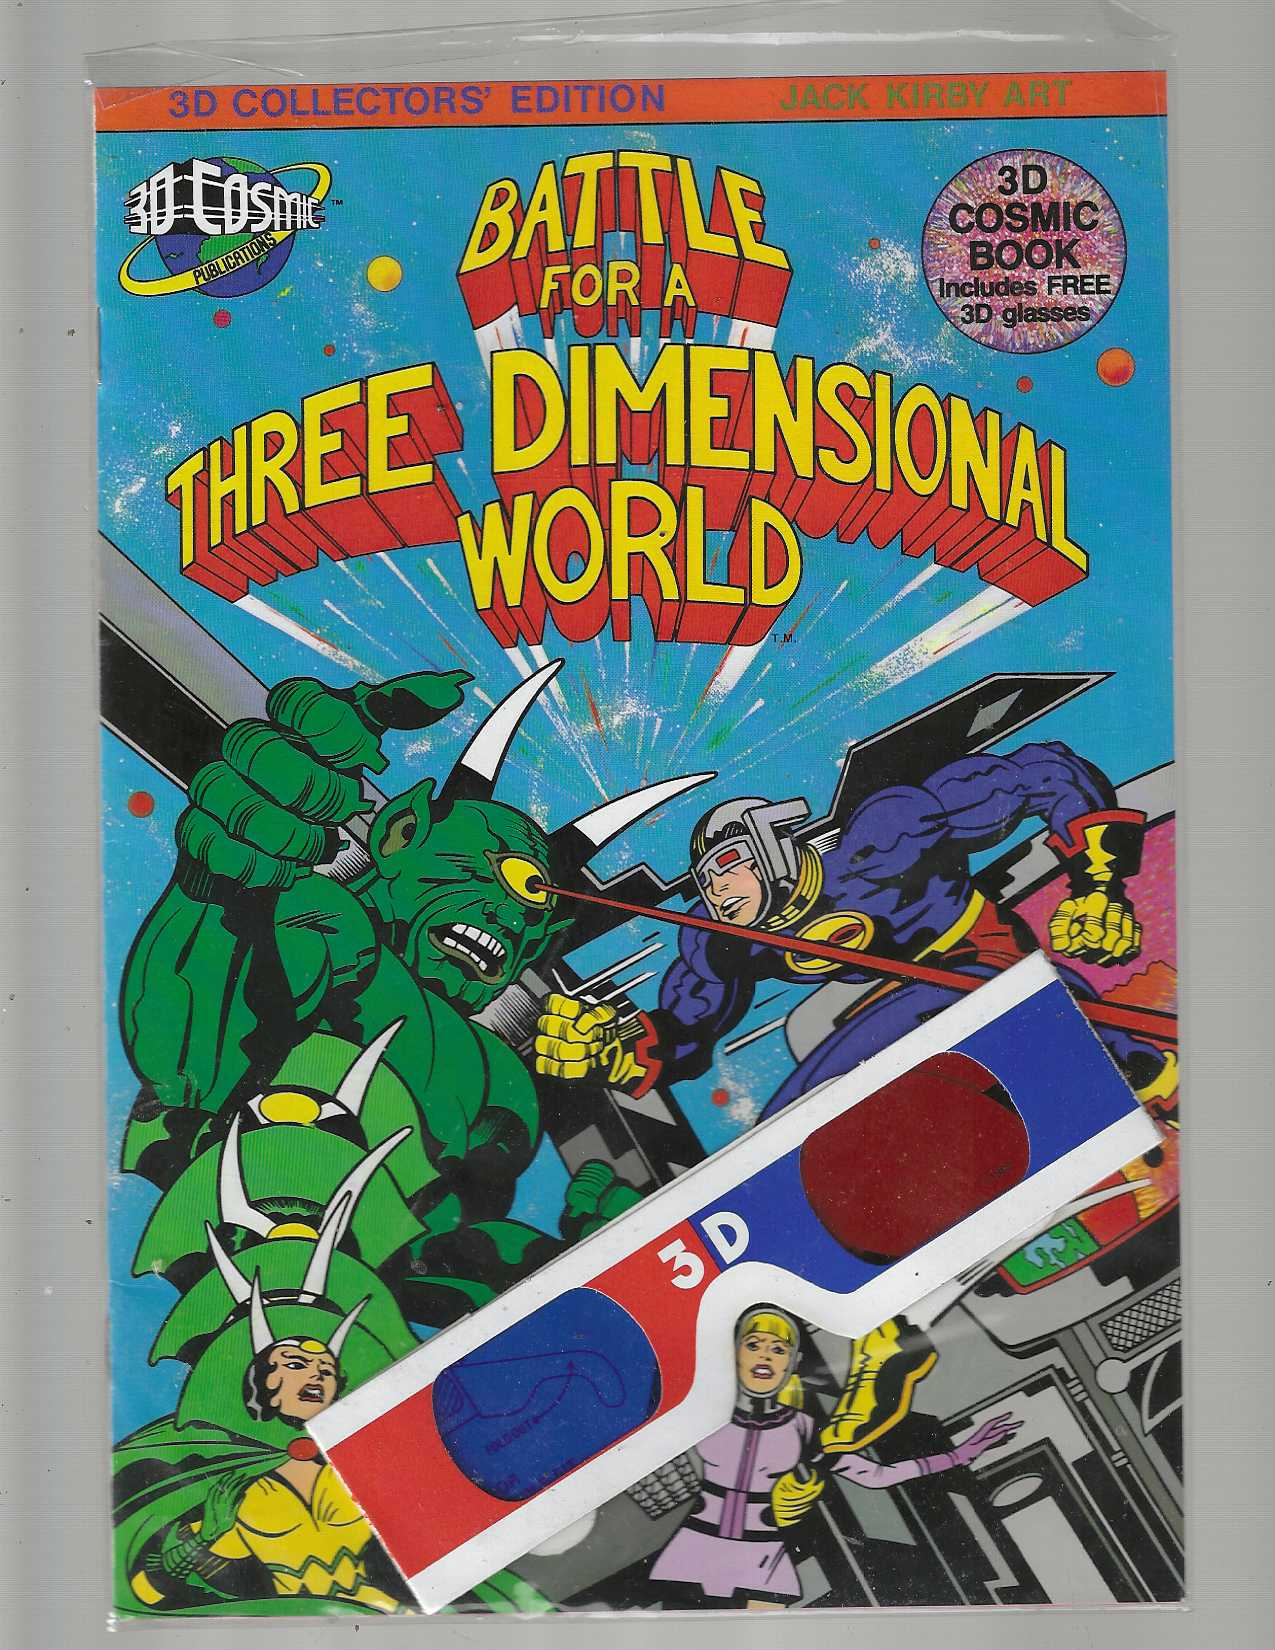 Image for Battle for a three Dimensional World: #D Collector's Edition:Jack Kirby Art